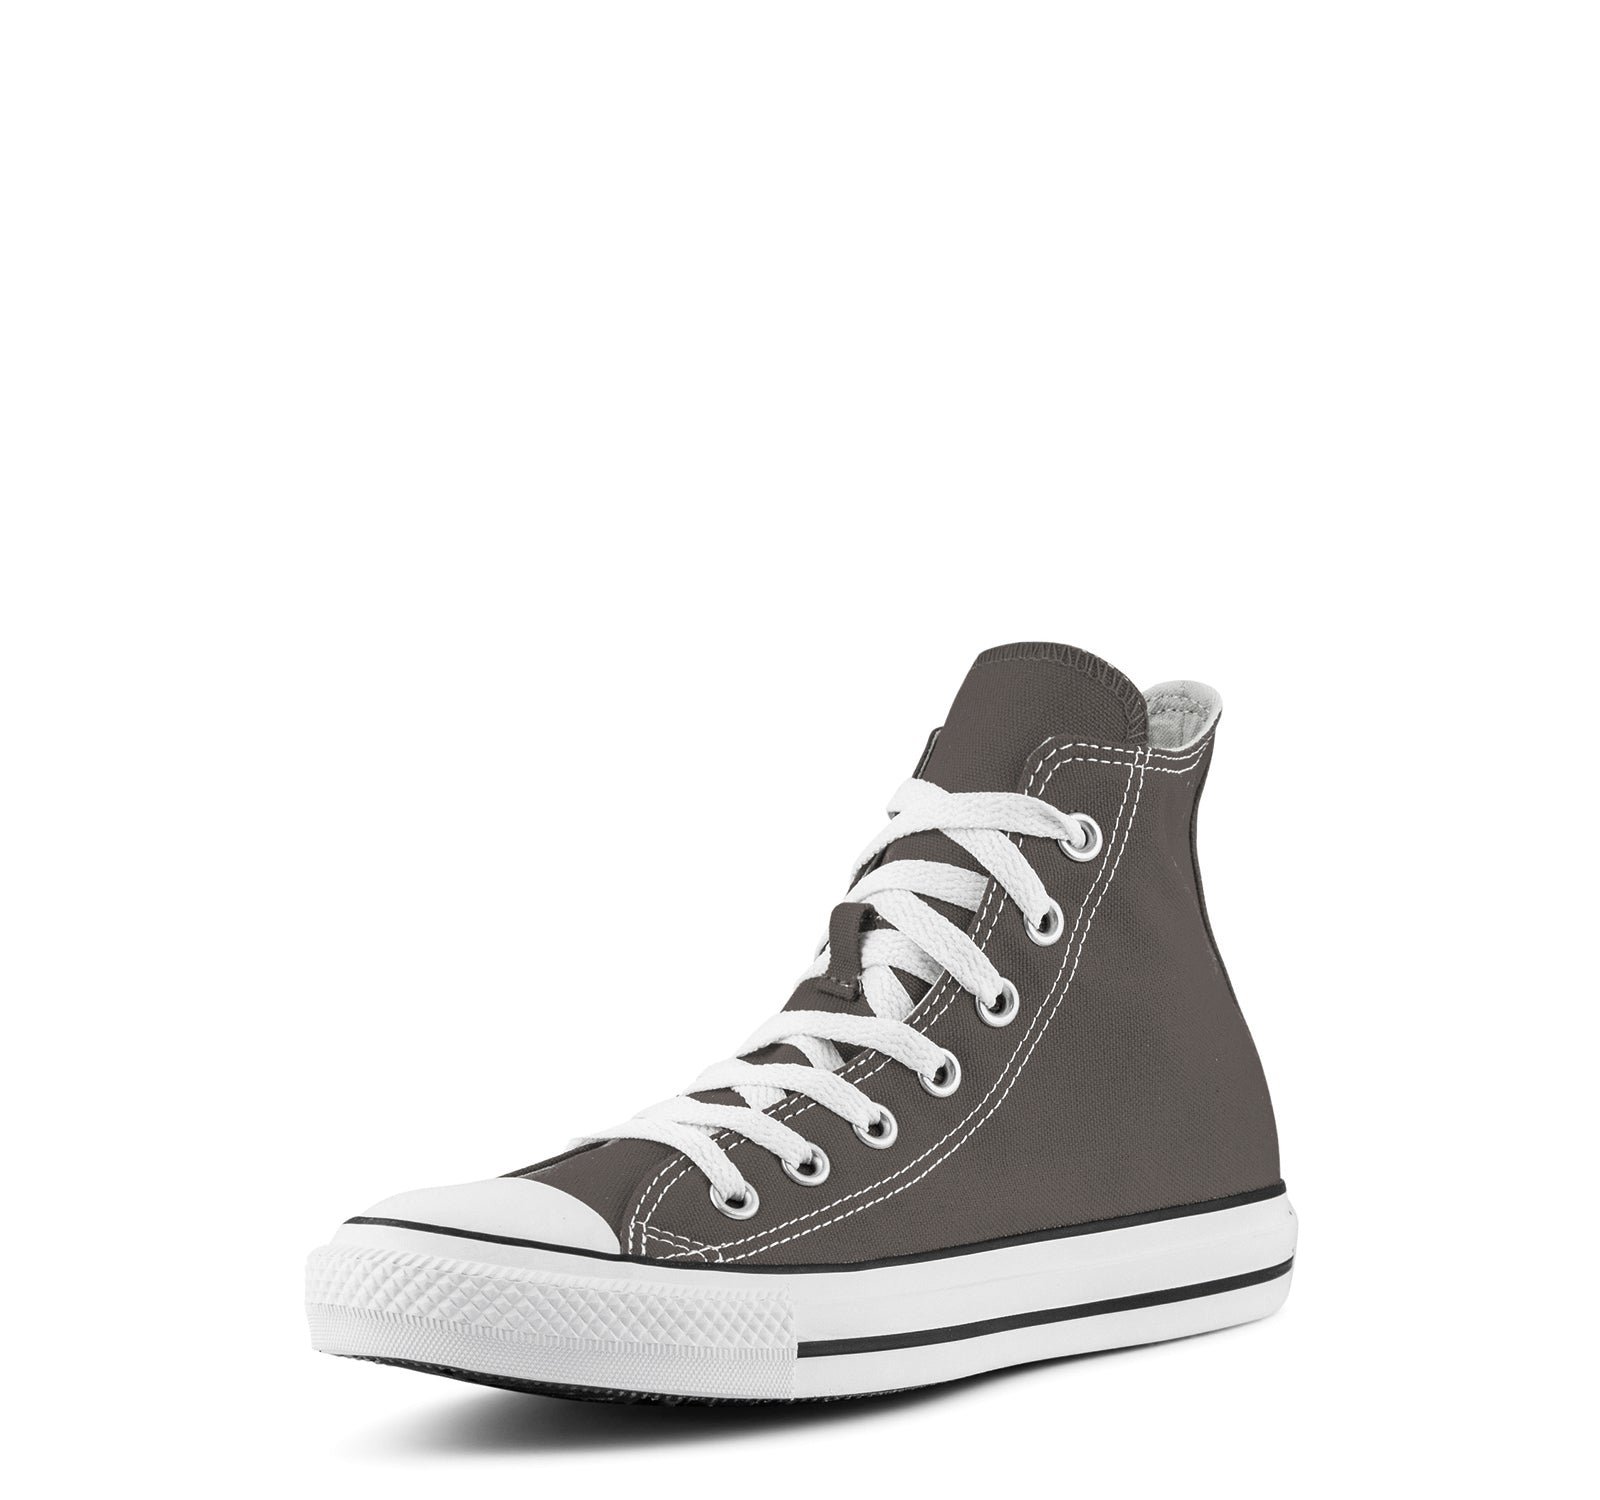 5d30a4444239 ... Converse Chuck Taylor All Star Hi Top Kids Sneaker in Charcoal -  Converse - On The ...